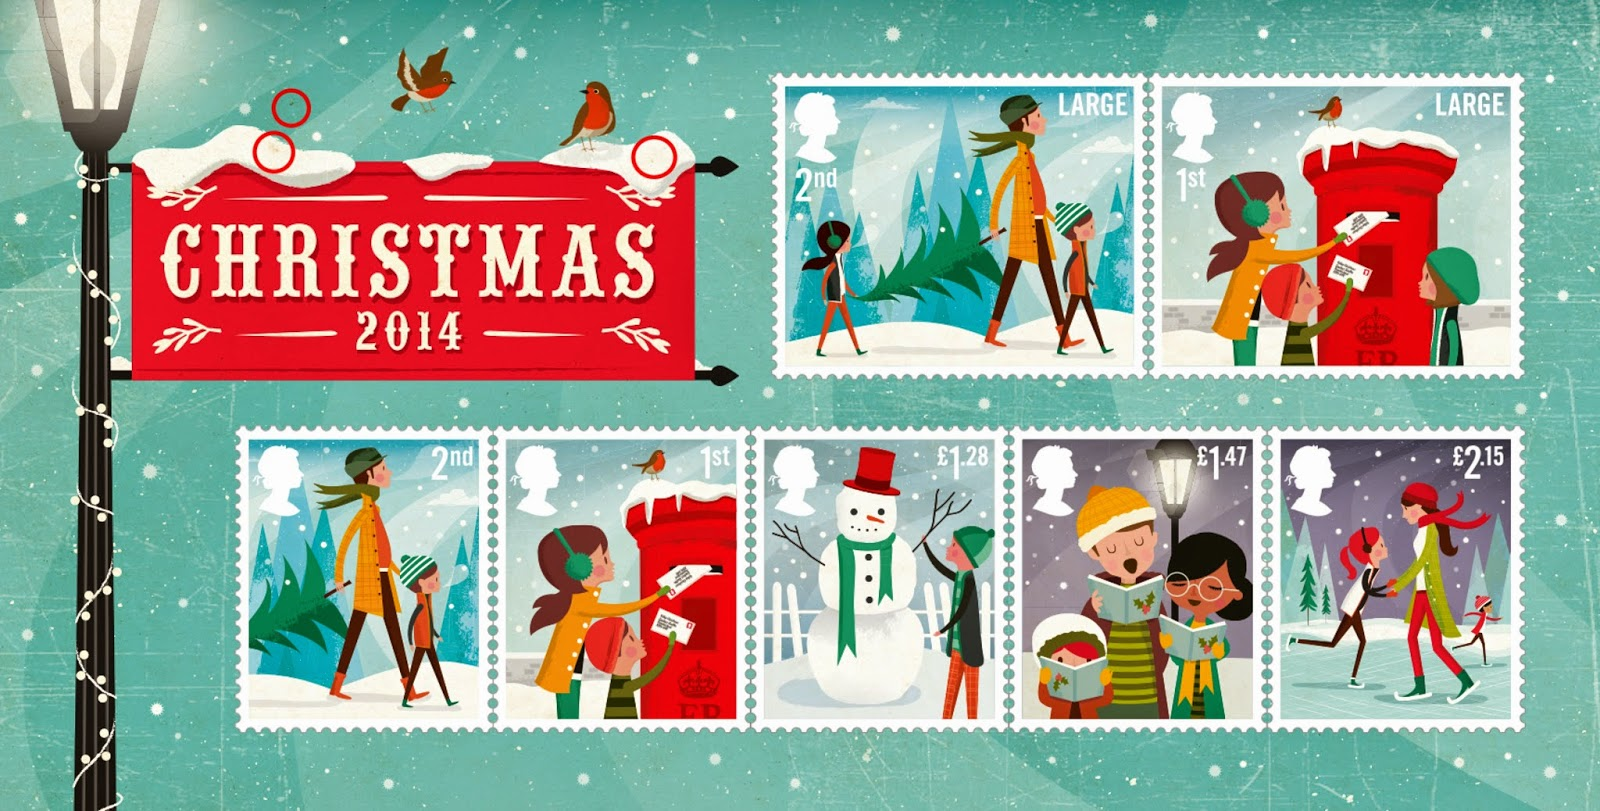 Usps Christmas Stamps.The Stamp Collecting Round Up November 2014